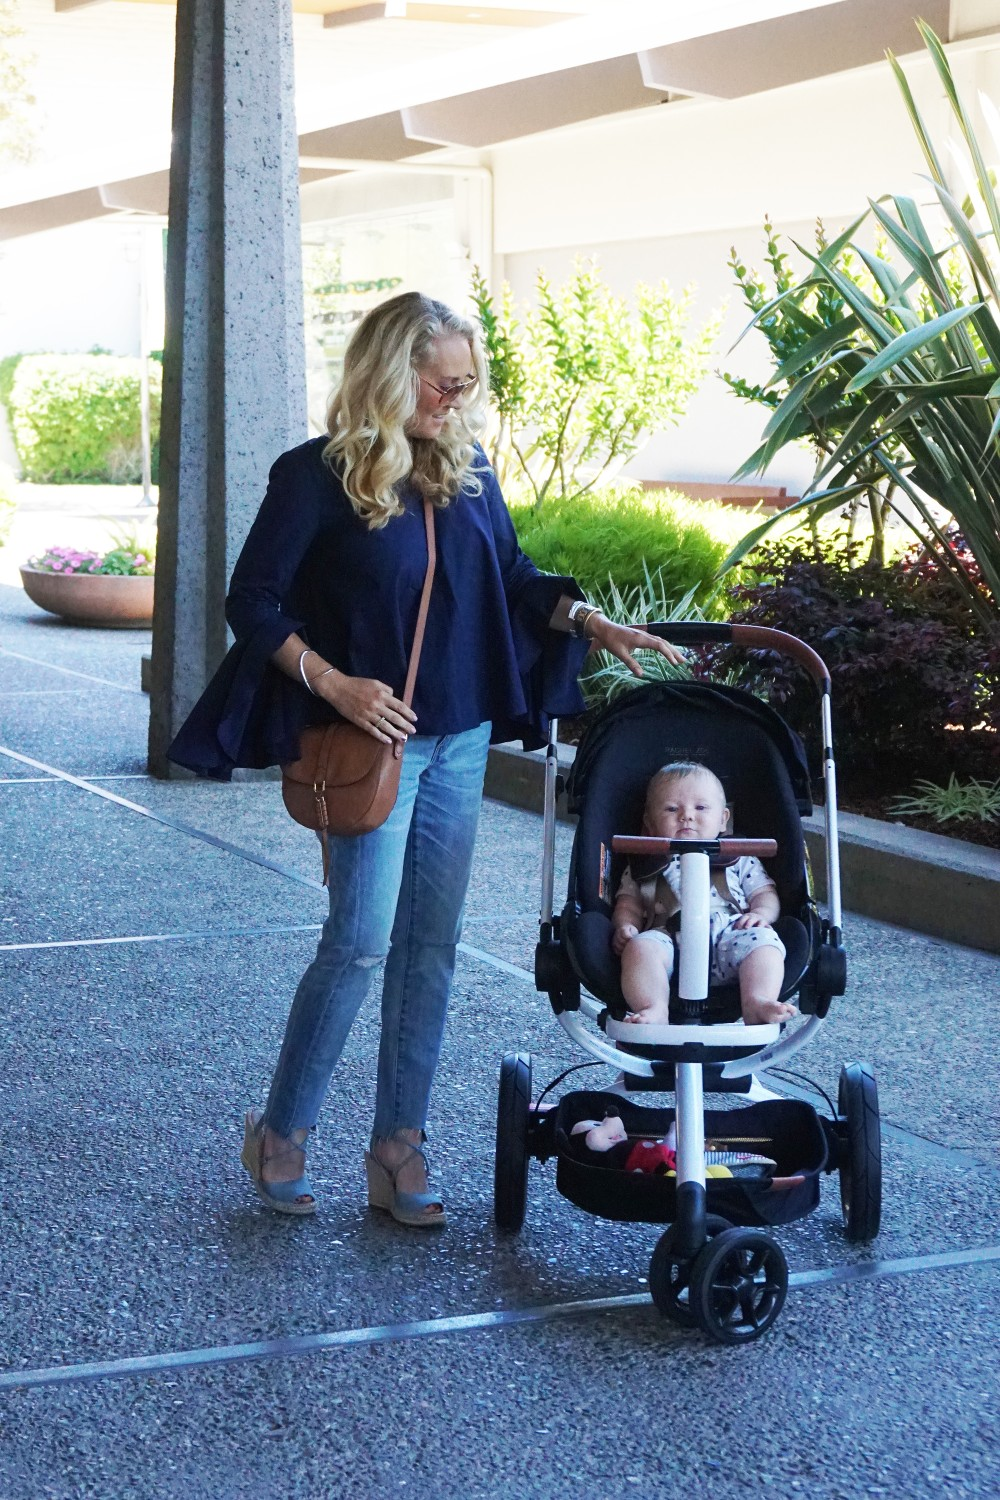 Review of Rachel Zoe x Quinny Moodd Stroller-Quinny Moodd Stroller-Modern Stroller-It Stroller for 2017-Chic Baby Stroller-Have Need Want-Baby Registry List Products-Baby Registry Must Have Item 8